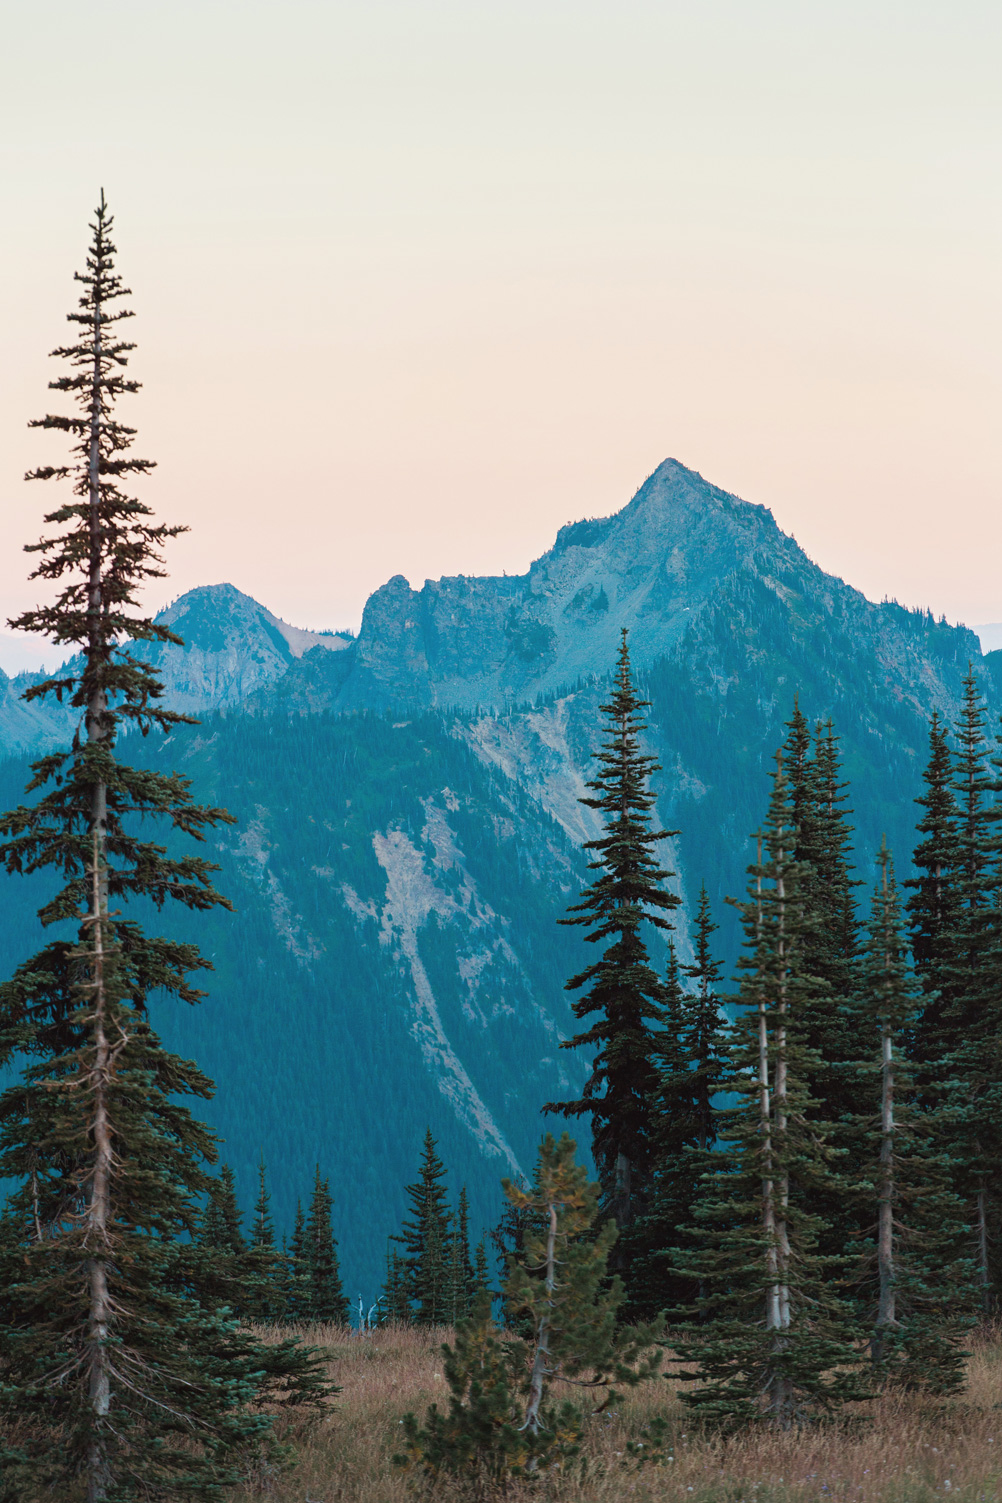 CindyGiovagnoli_Mount_Rainier_National_Park_Washington-024.jpg